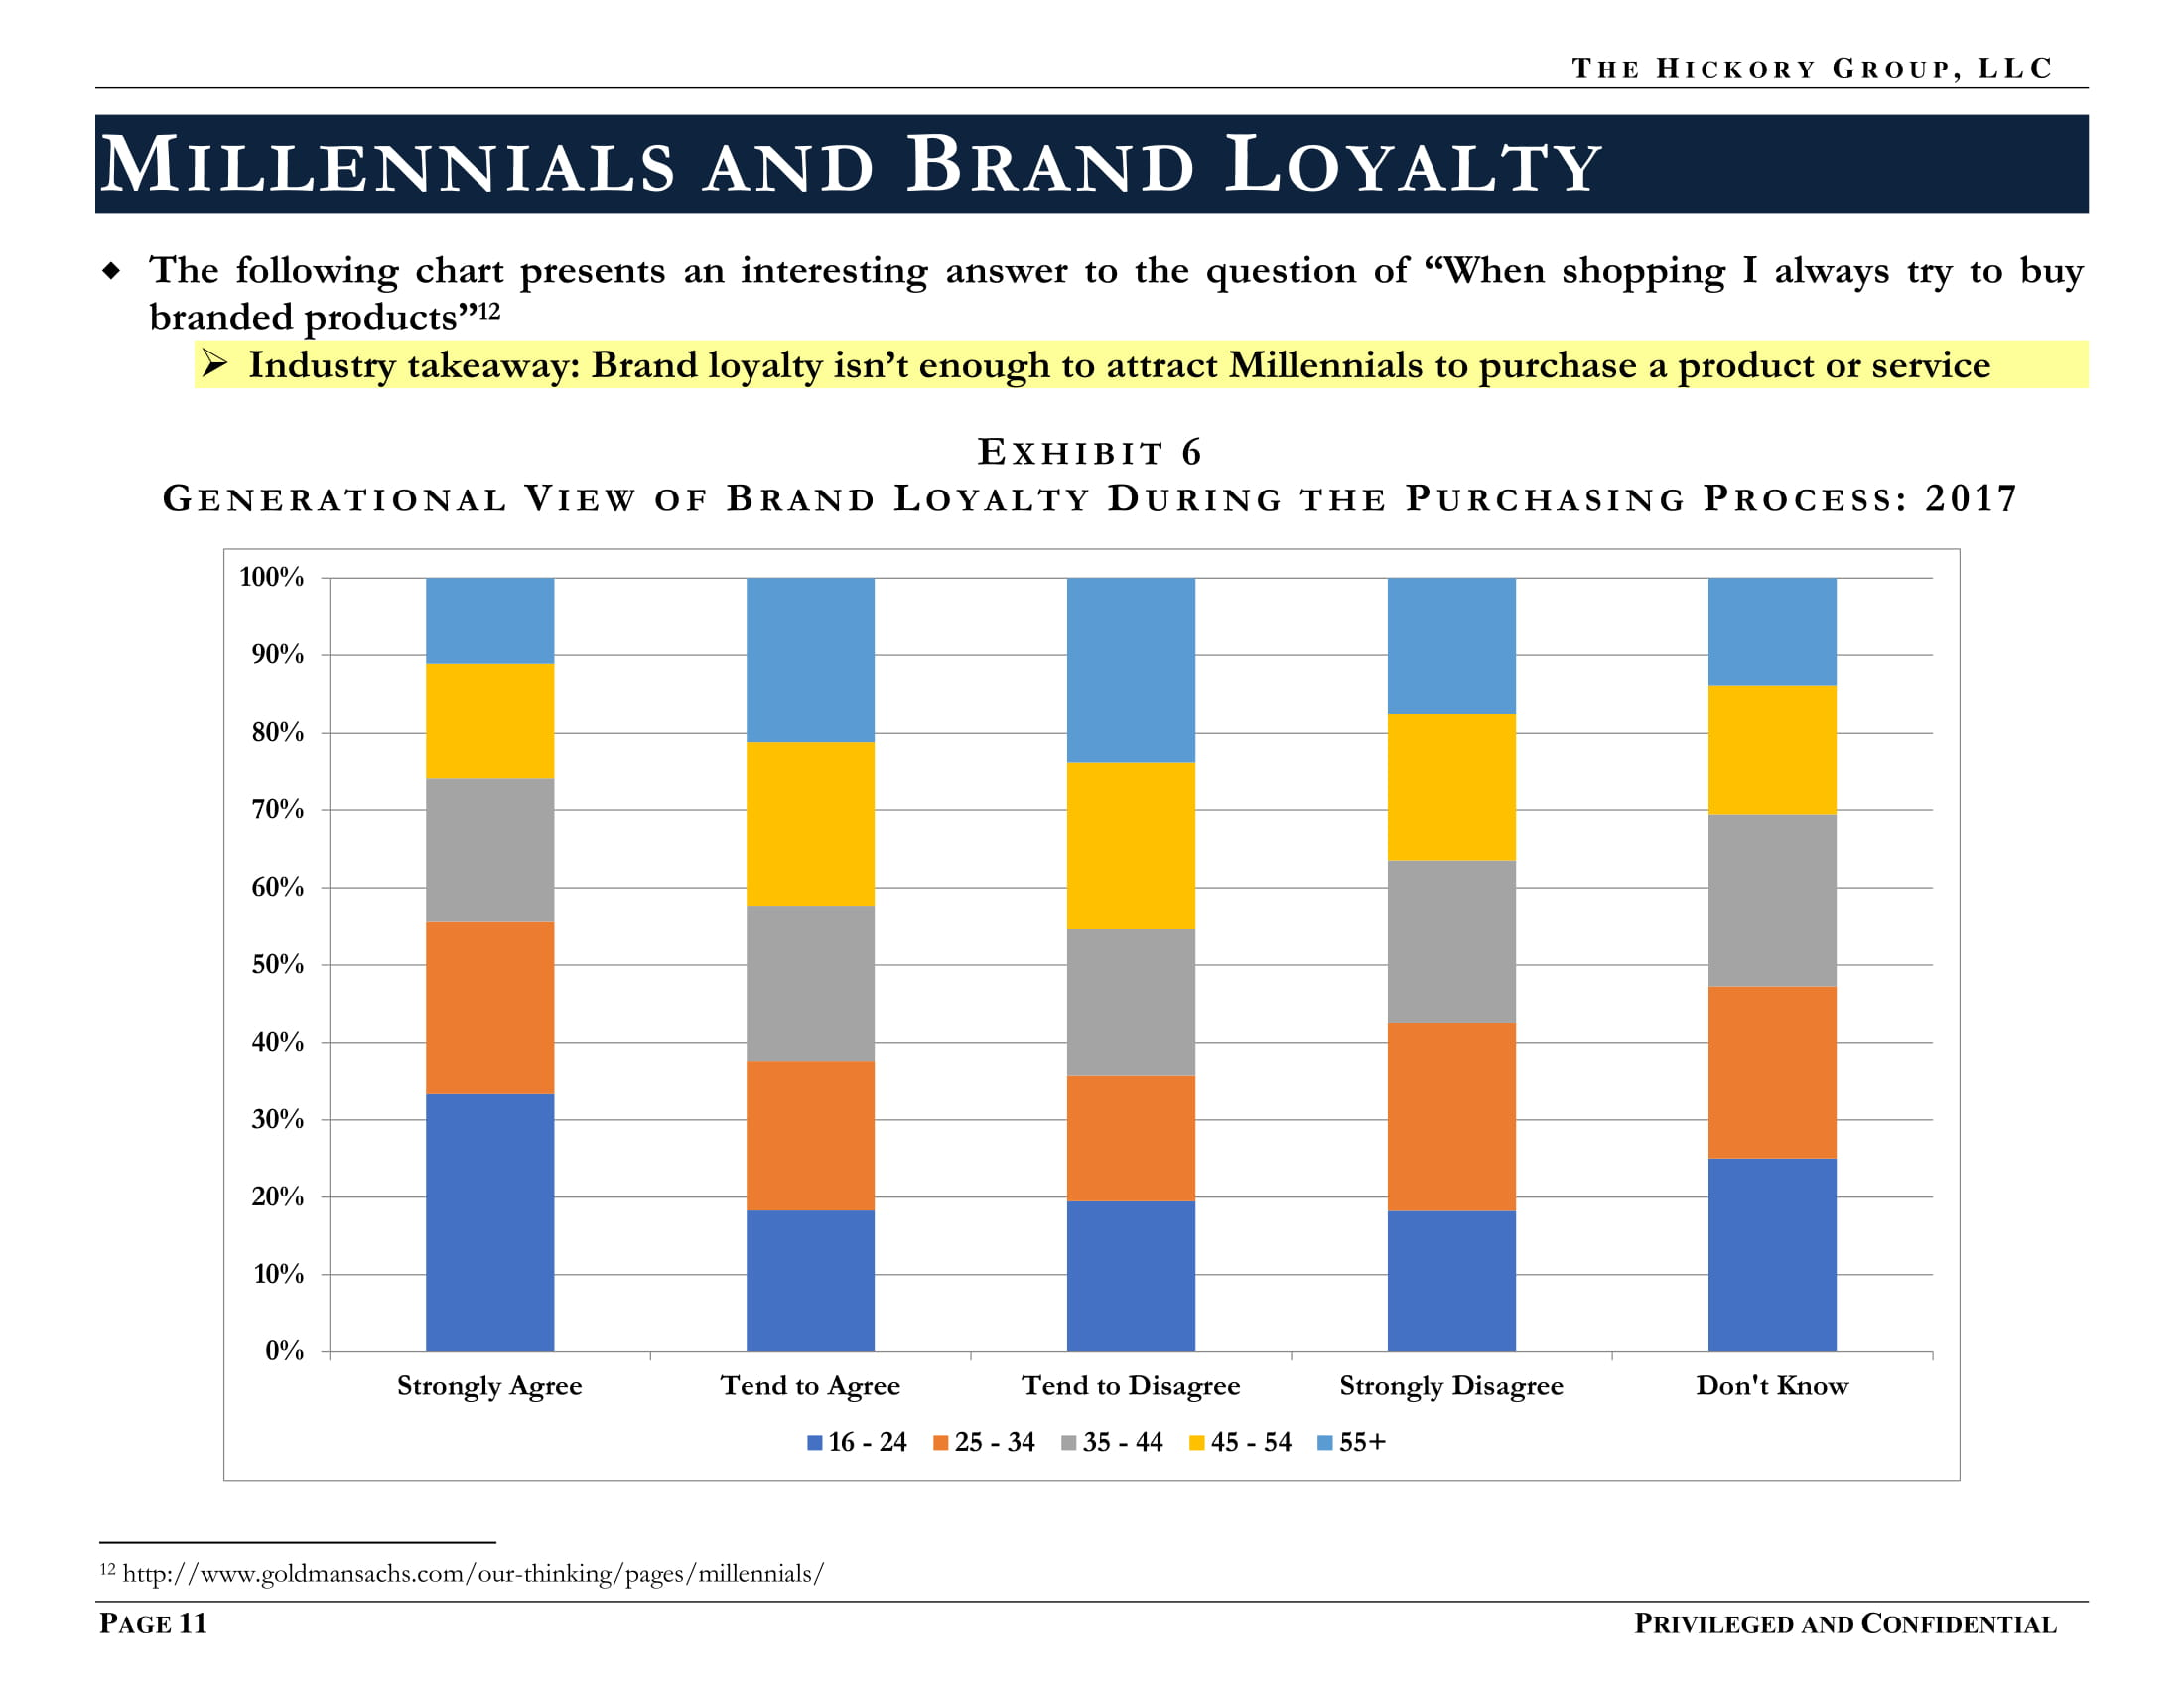 PUBLIC FINAL _Millennials and Equine Market Summary (15 November 2017) Privileged and Confidential-11.jpg